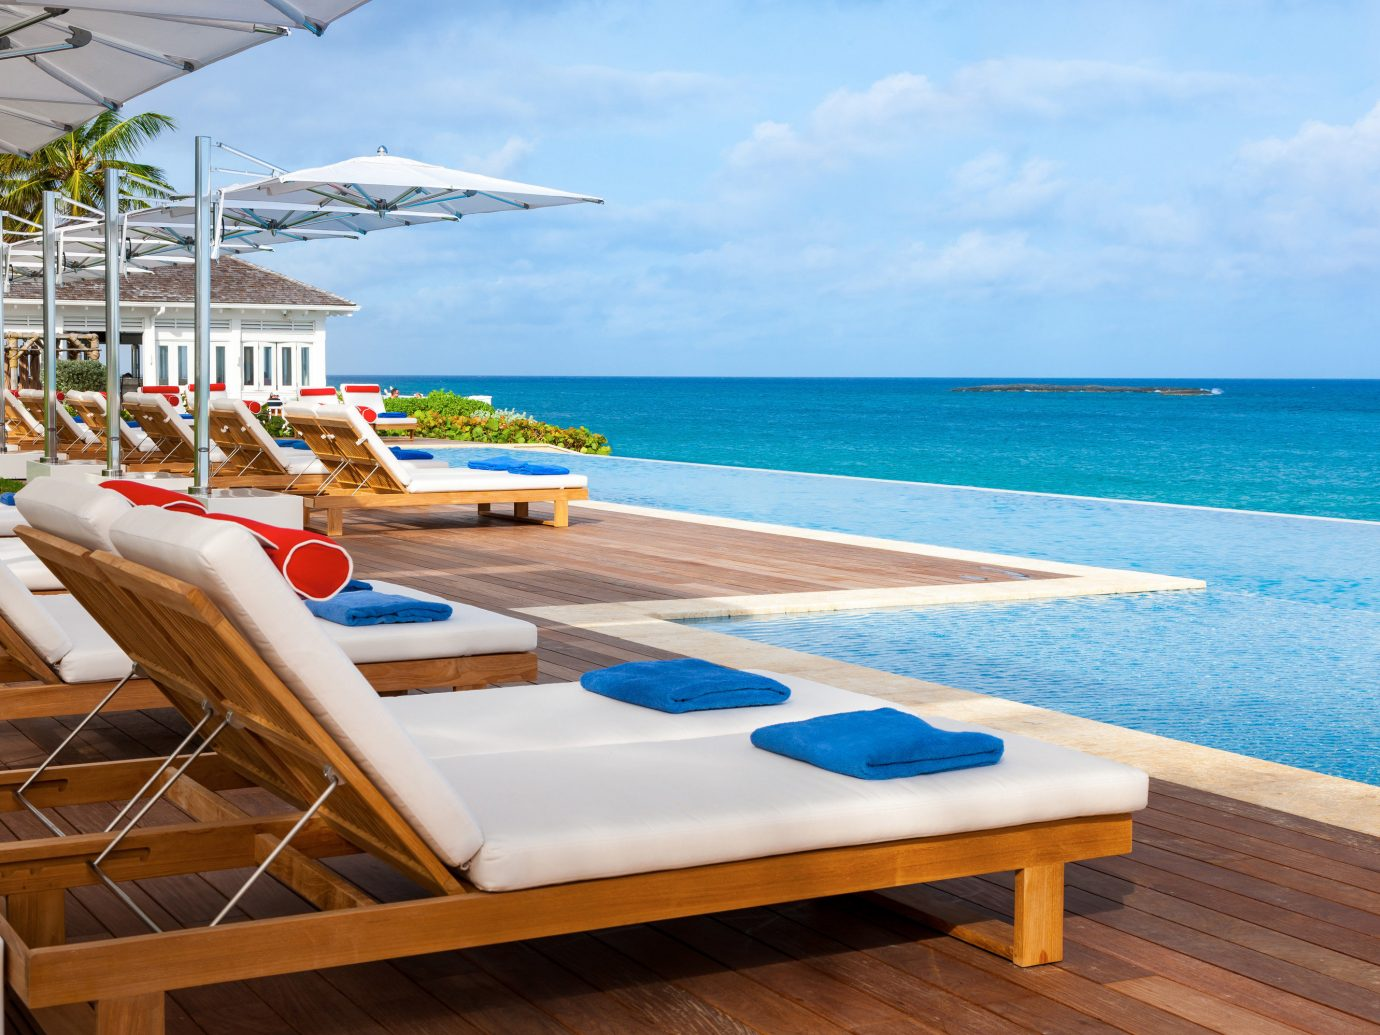 Hotels Romance Trip Ideas sky water chair outdoor leisure Beach property swimming pool vacation caribbean Resort Ocean Sea furniture estate Villa Deck